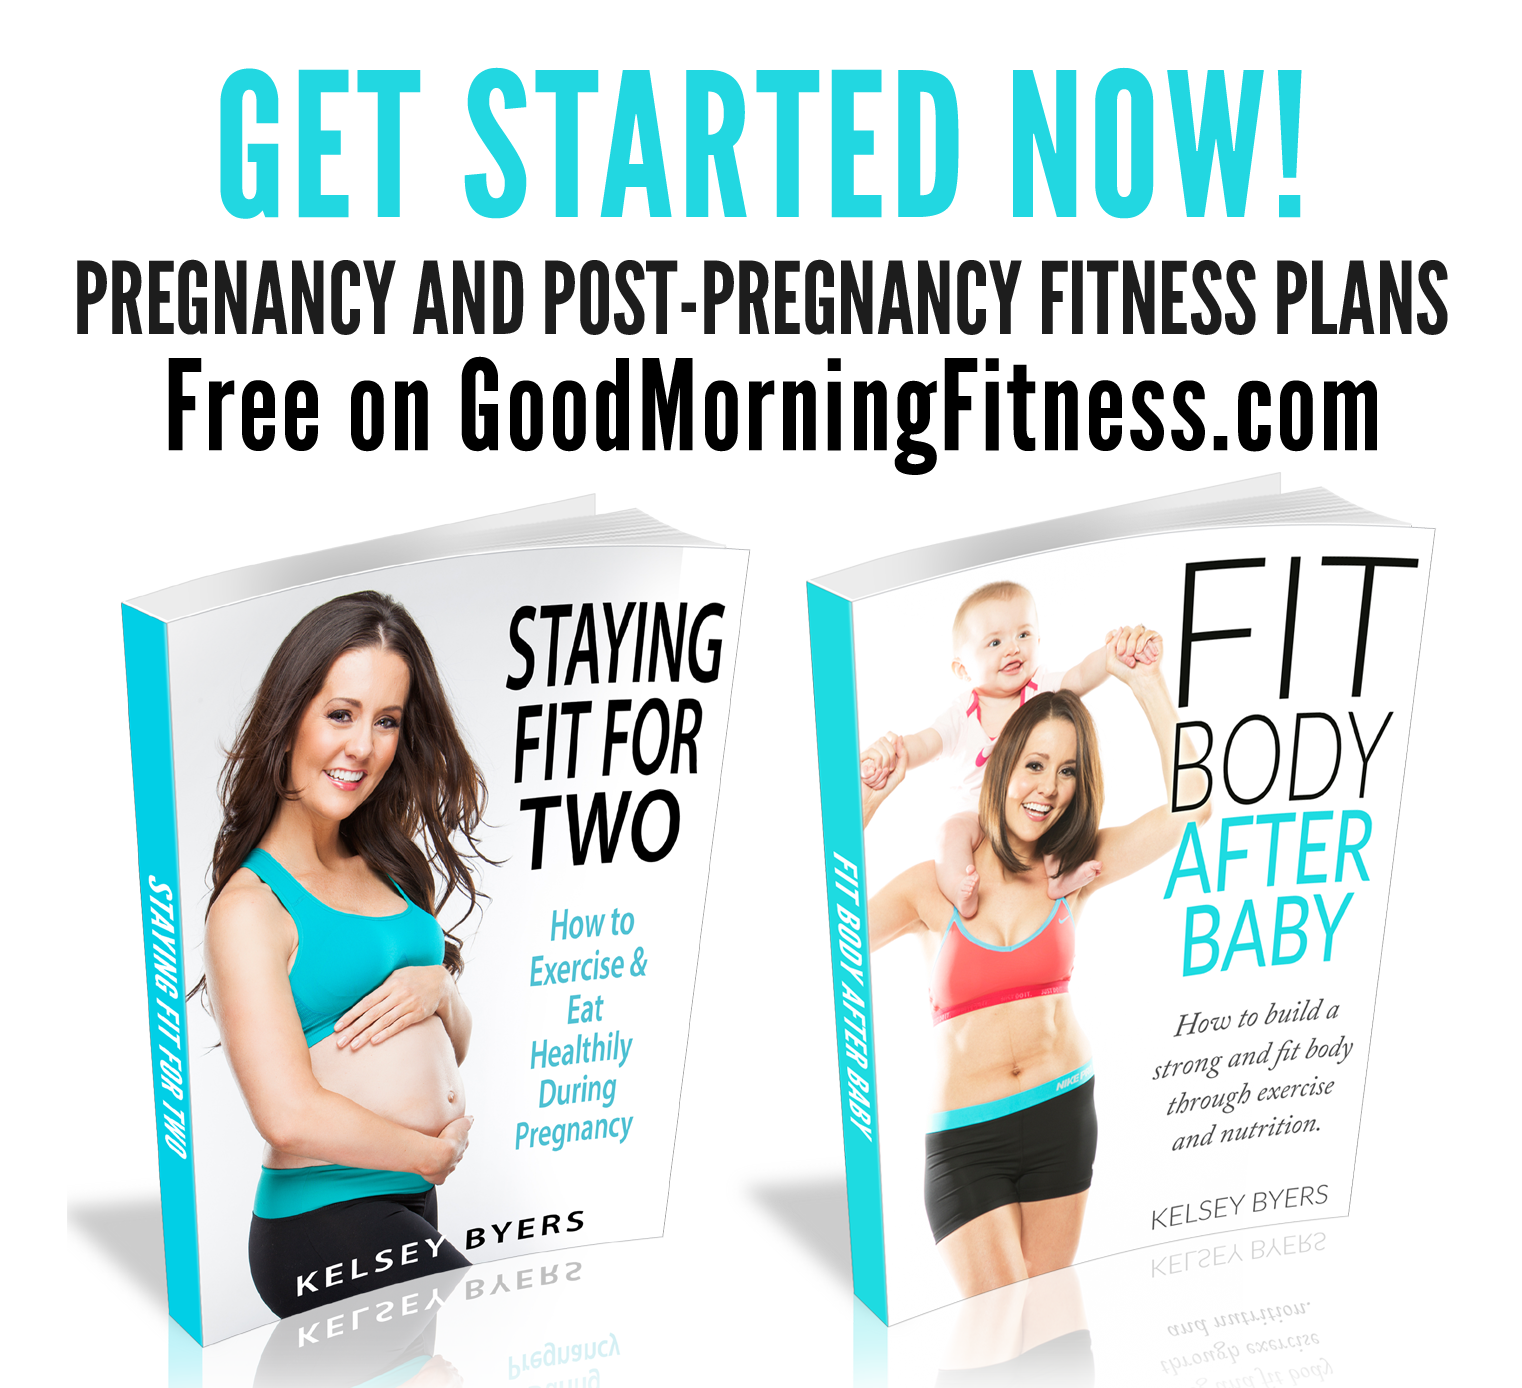 Good Morning Fitness: Pregnancy and Post-Pregnancy Fitness Plans - FREE! Start NOW!